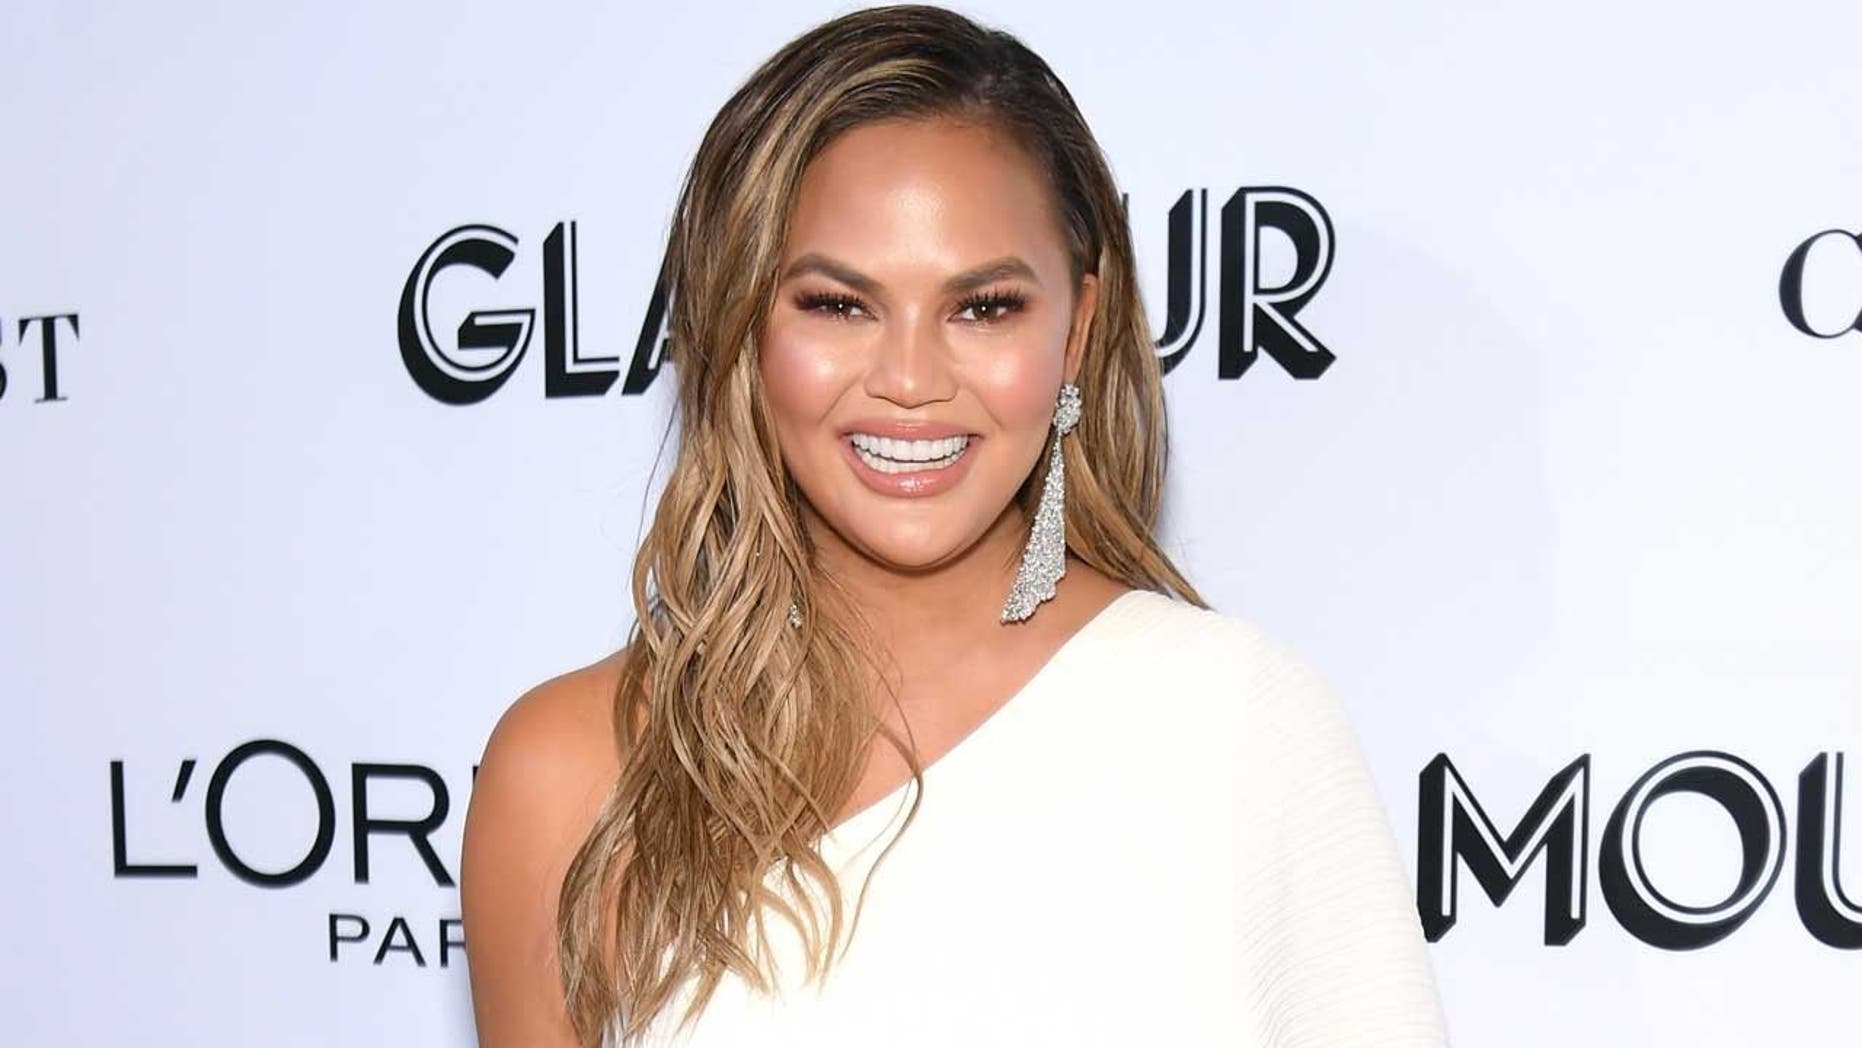 Chrissy Teigen revealed on Instagram on Monday that her dad got a tattoo of her face for her 33rd birthday.